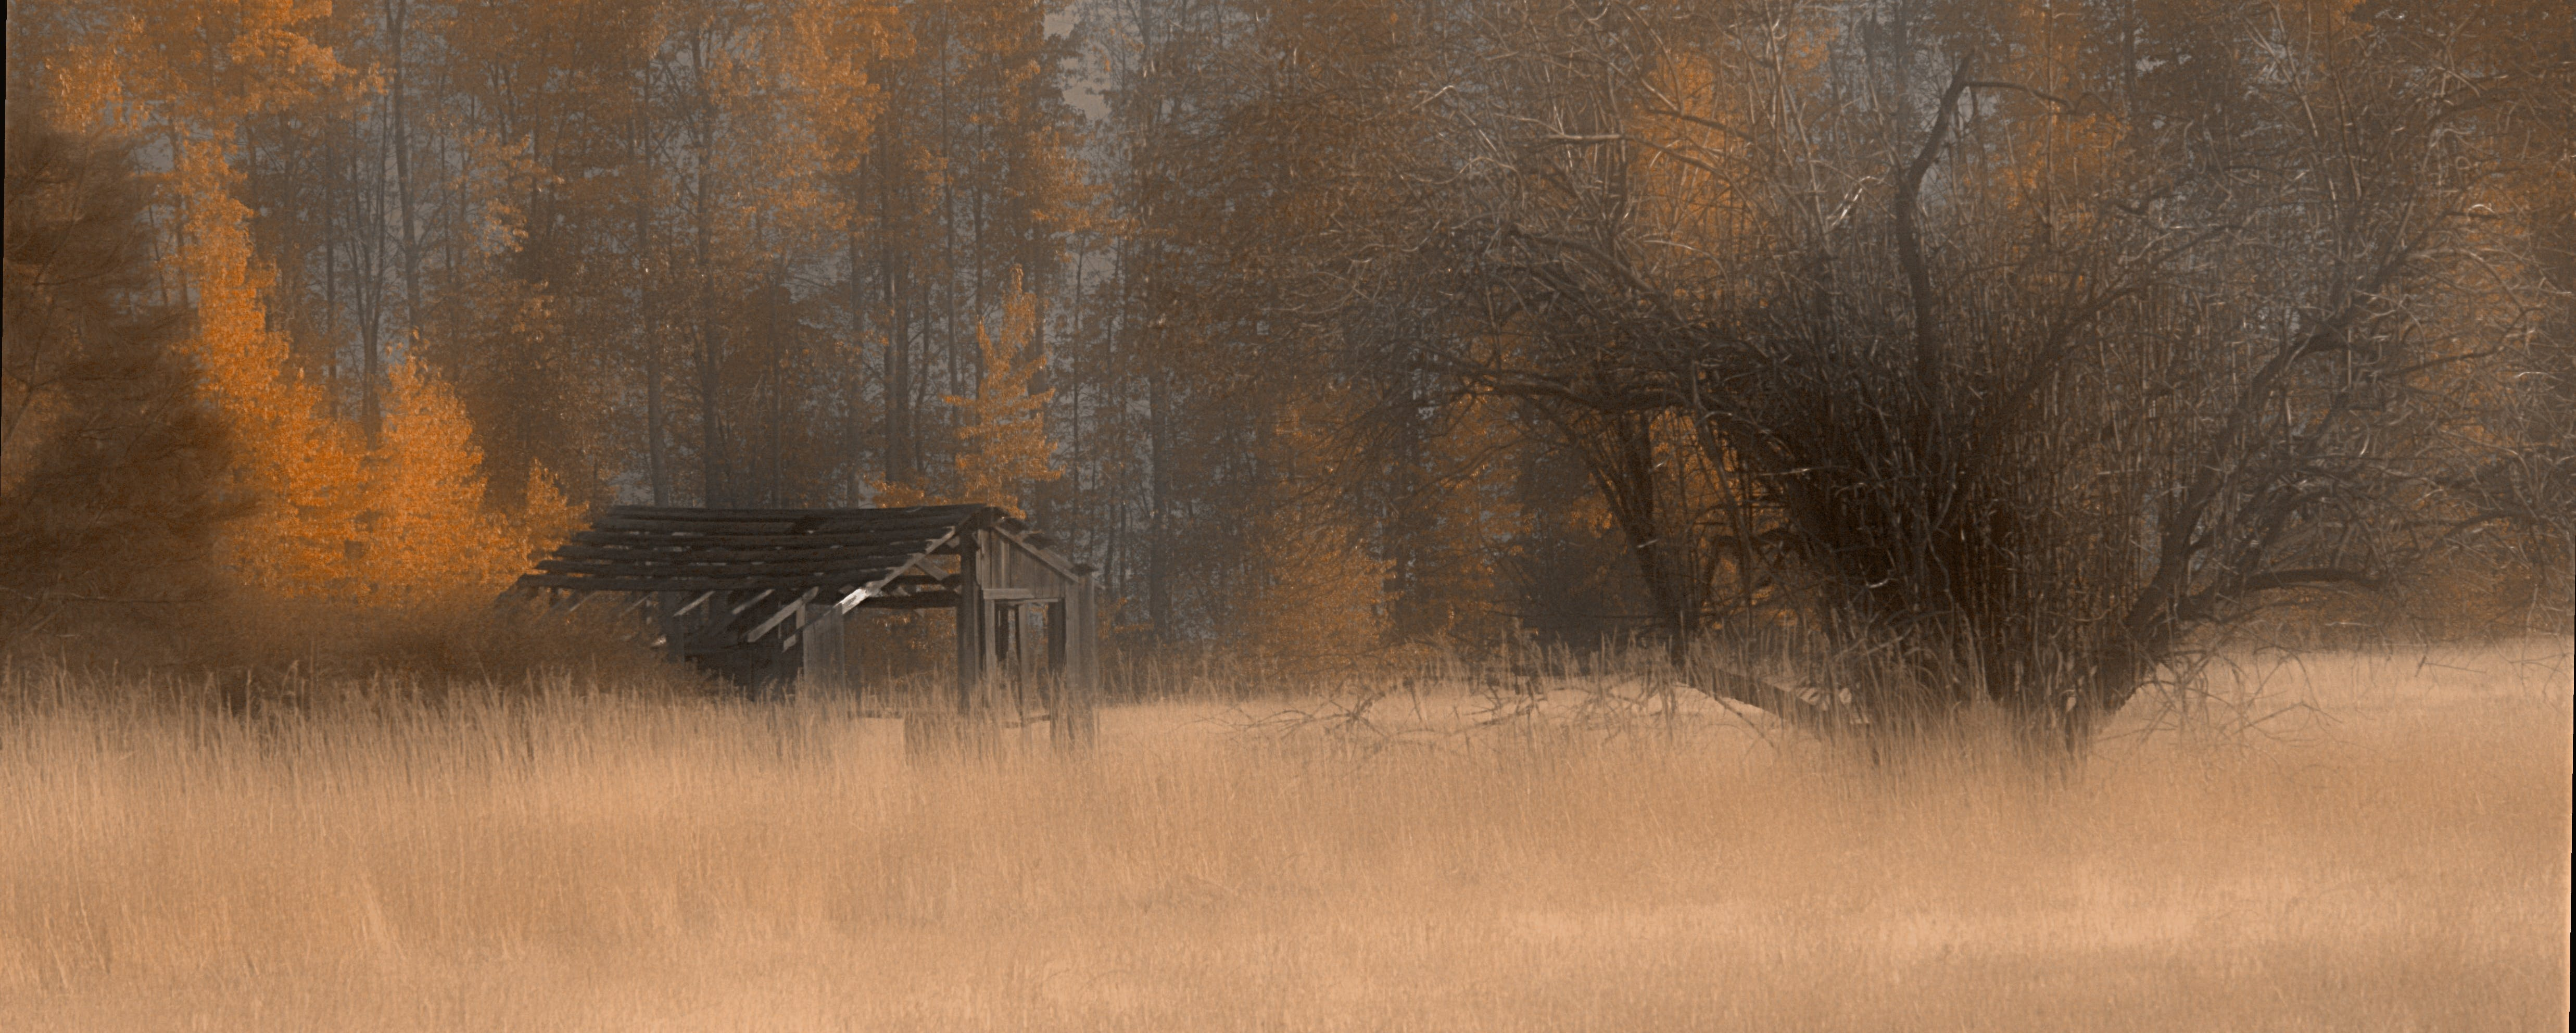 Free stock photo of Fall in British Columbia Canada... shed in autumn